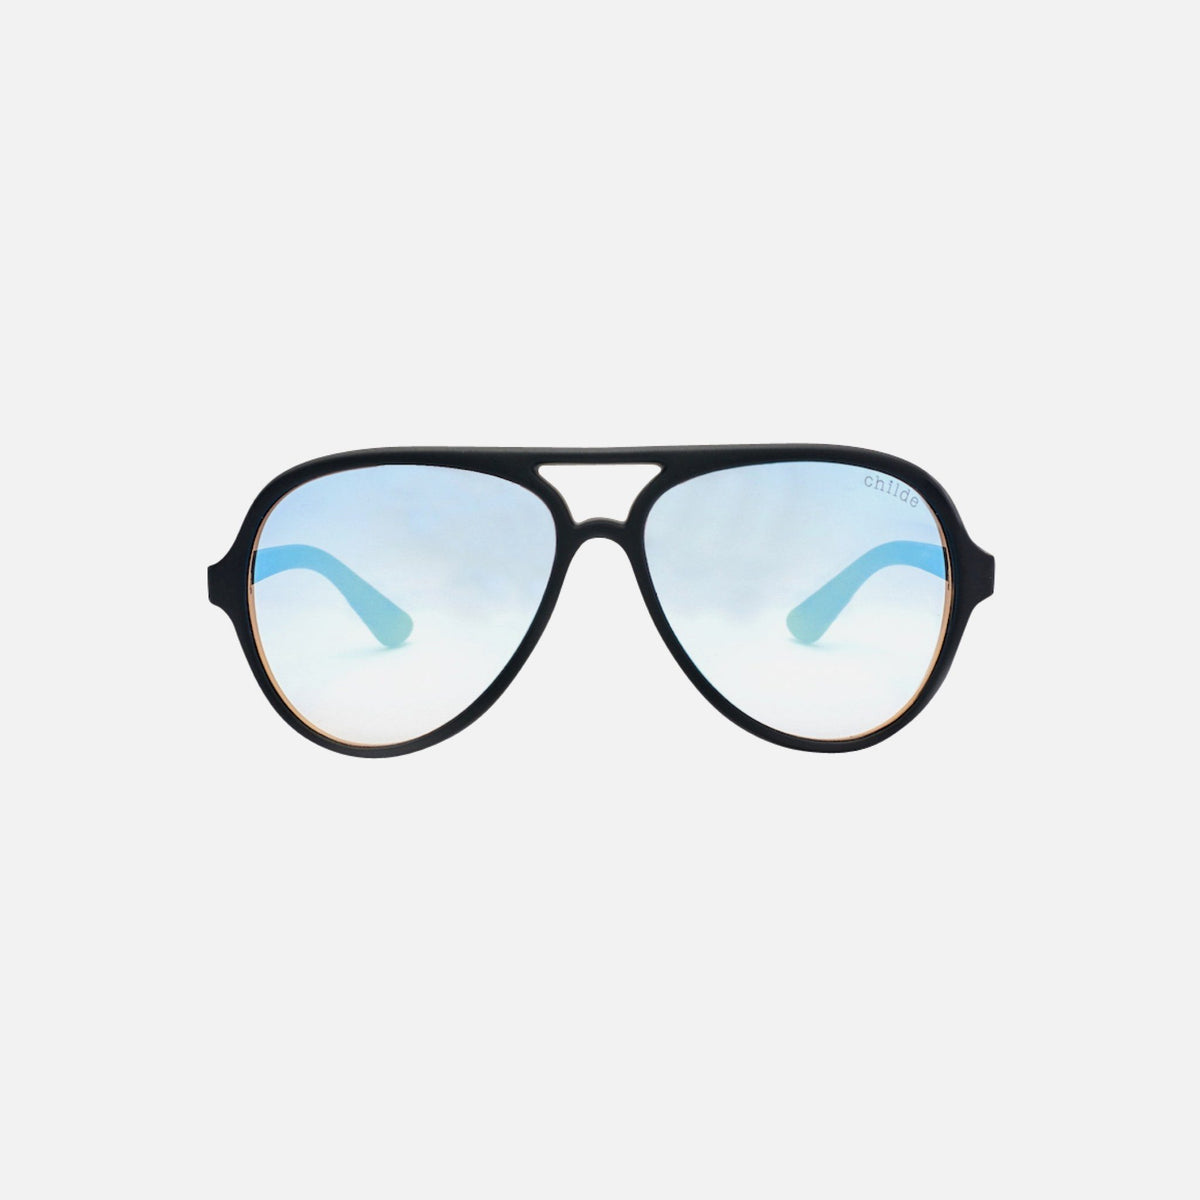 DELETE Matte Black | Double Gradient Rose / Sky Blue Mirror Flash Lens